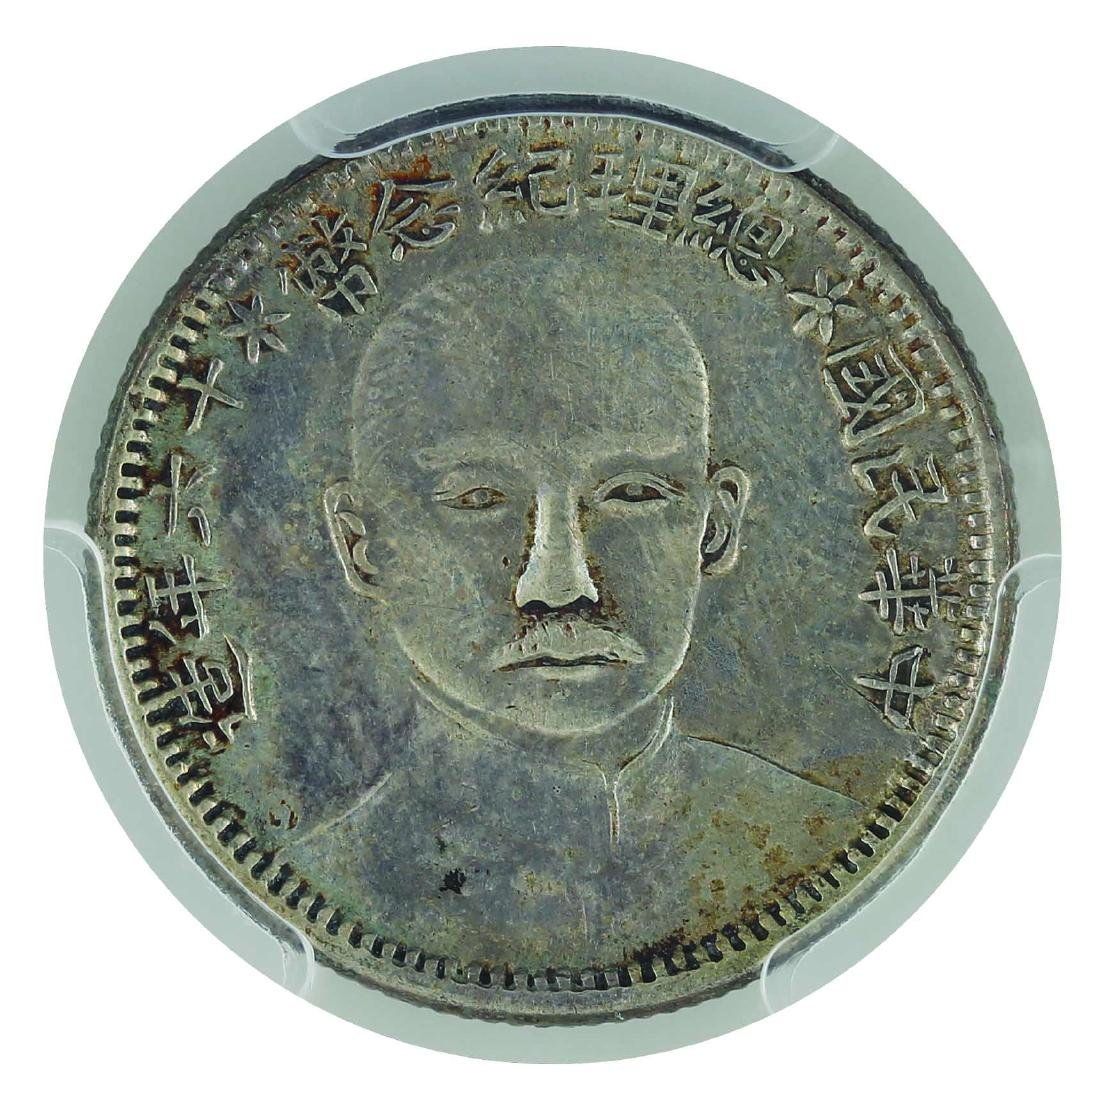 CHINA-Republic 20 Cents, Year 16 (1927).